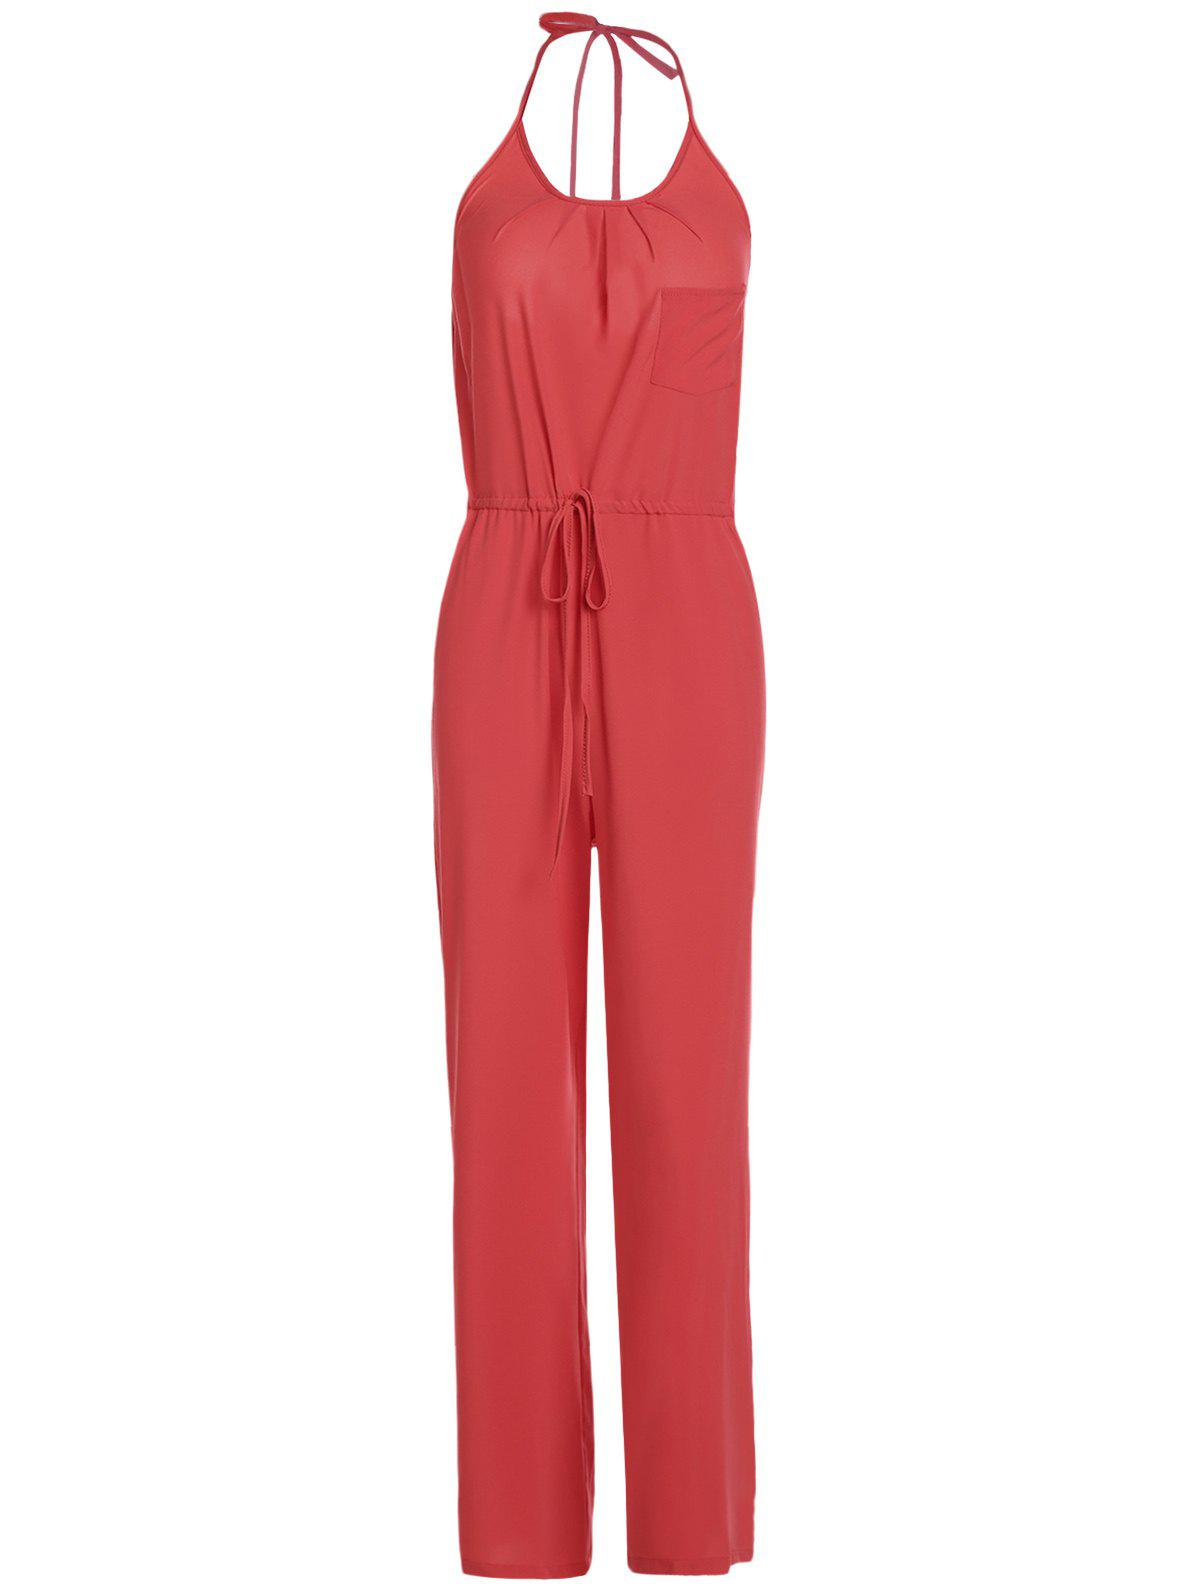 Affordable Chic Solid Color Spaghetti Strap Wide Leg Loose Jumpsuit For Women